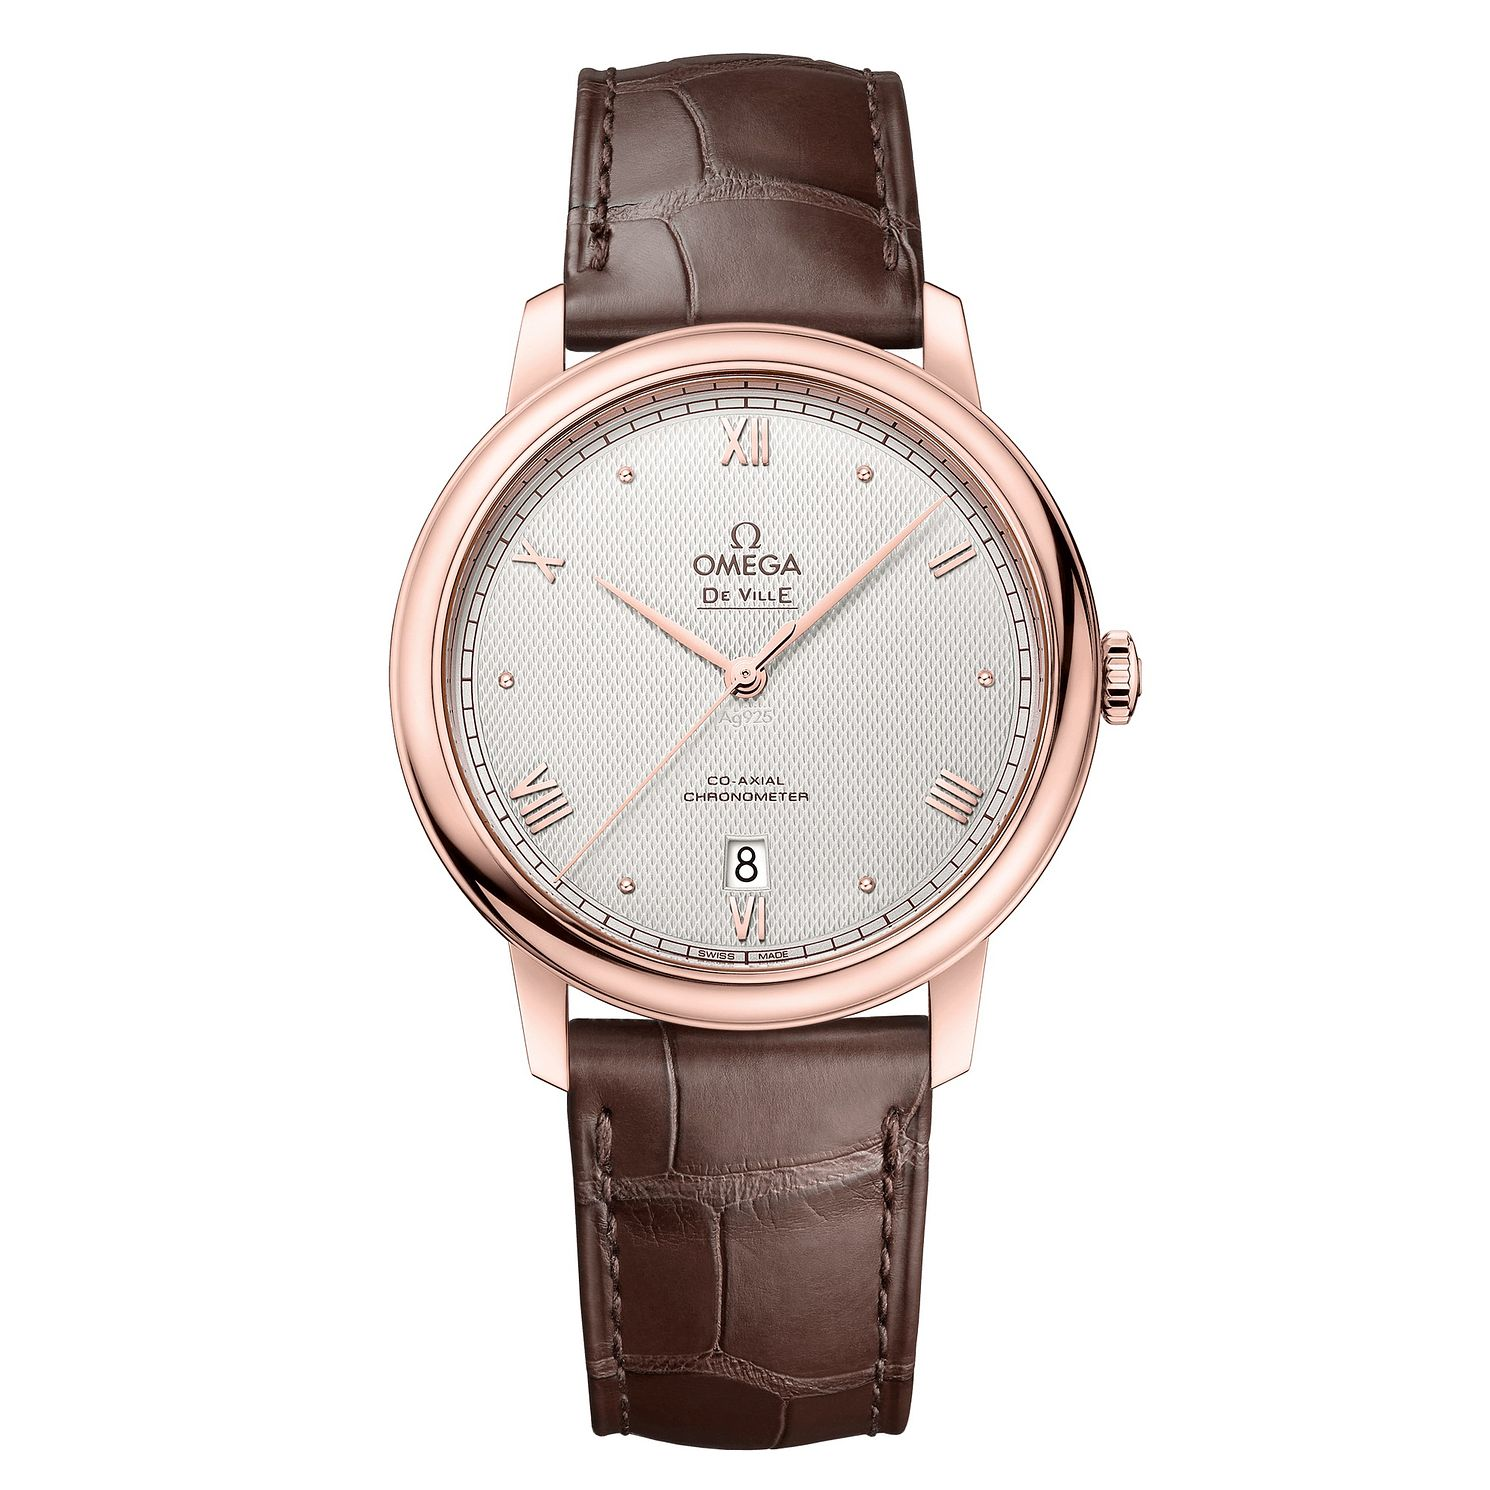 Omega De Ville 25th Anniversary Brown Leather Strap Watch - Product number 3657779